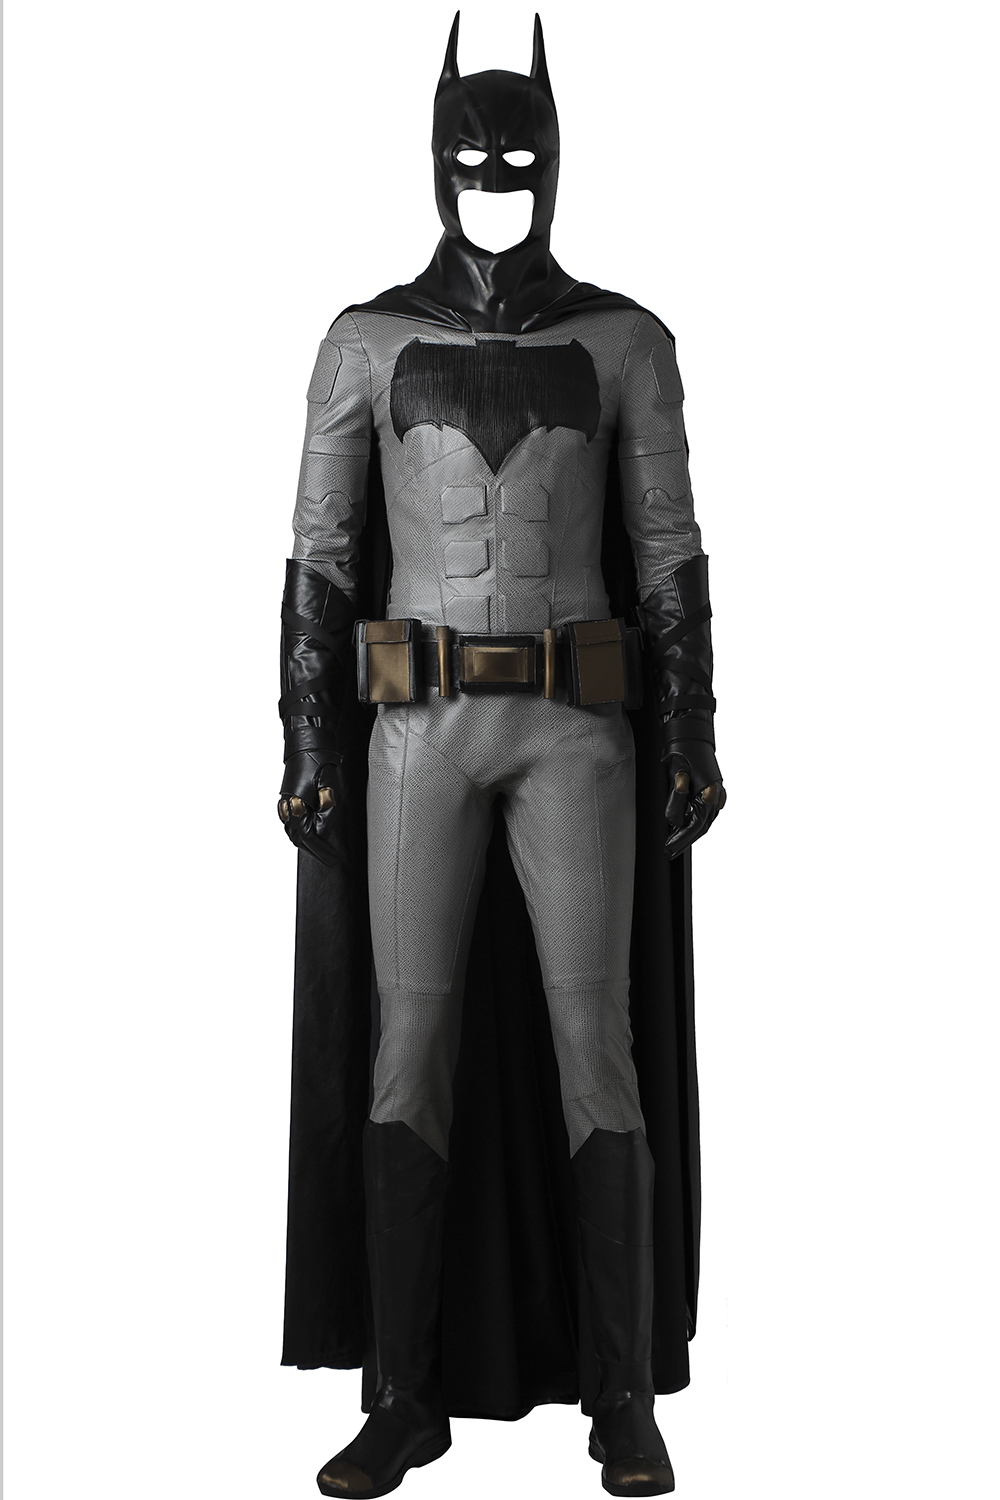 Batman Justice League Cosplay Costume Jacket Superhero Halloween Outfit Suit